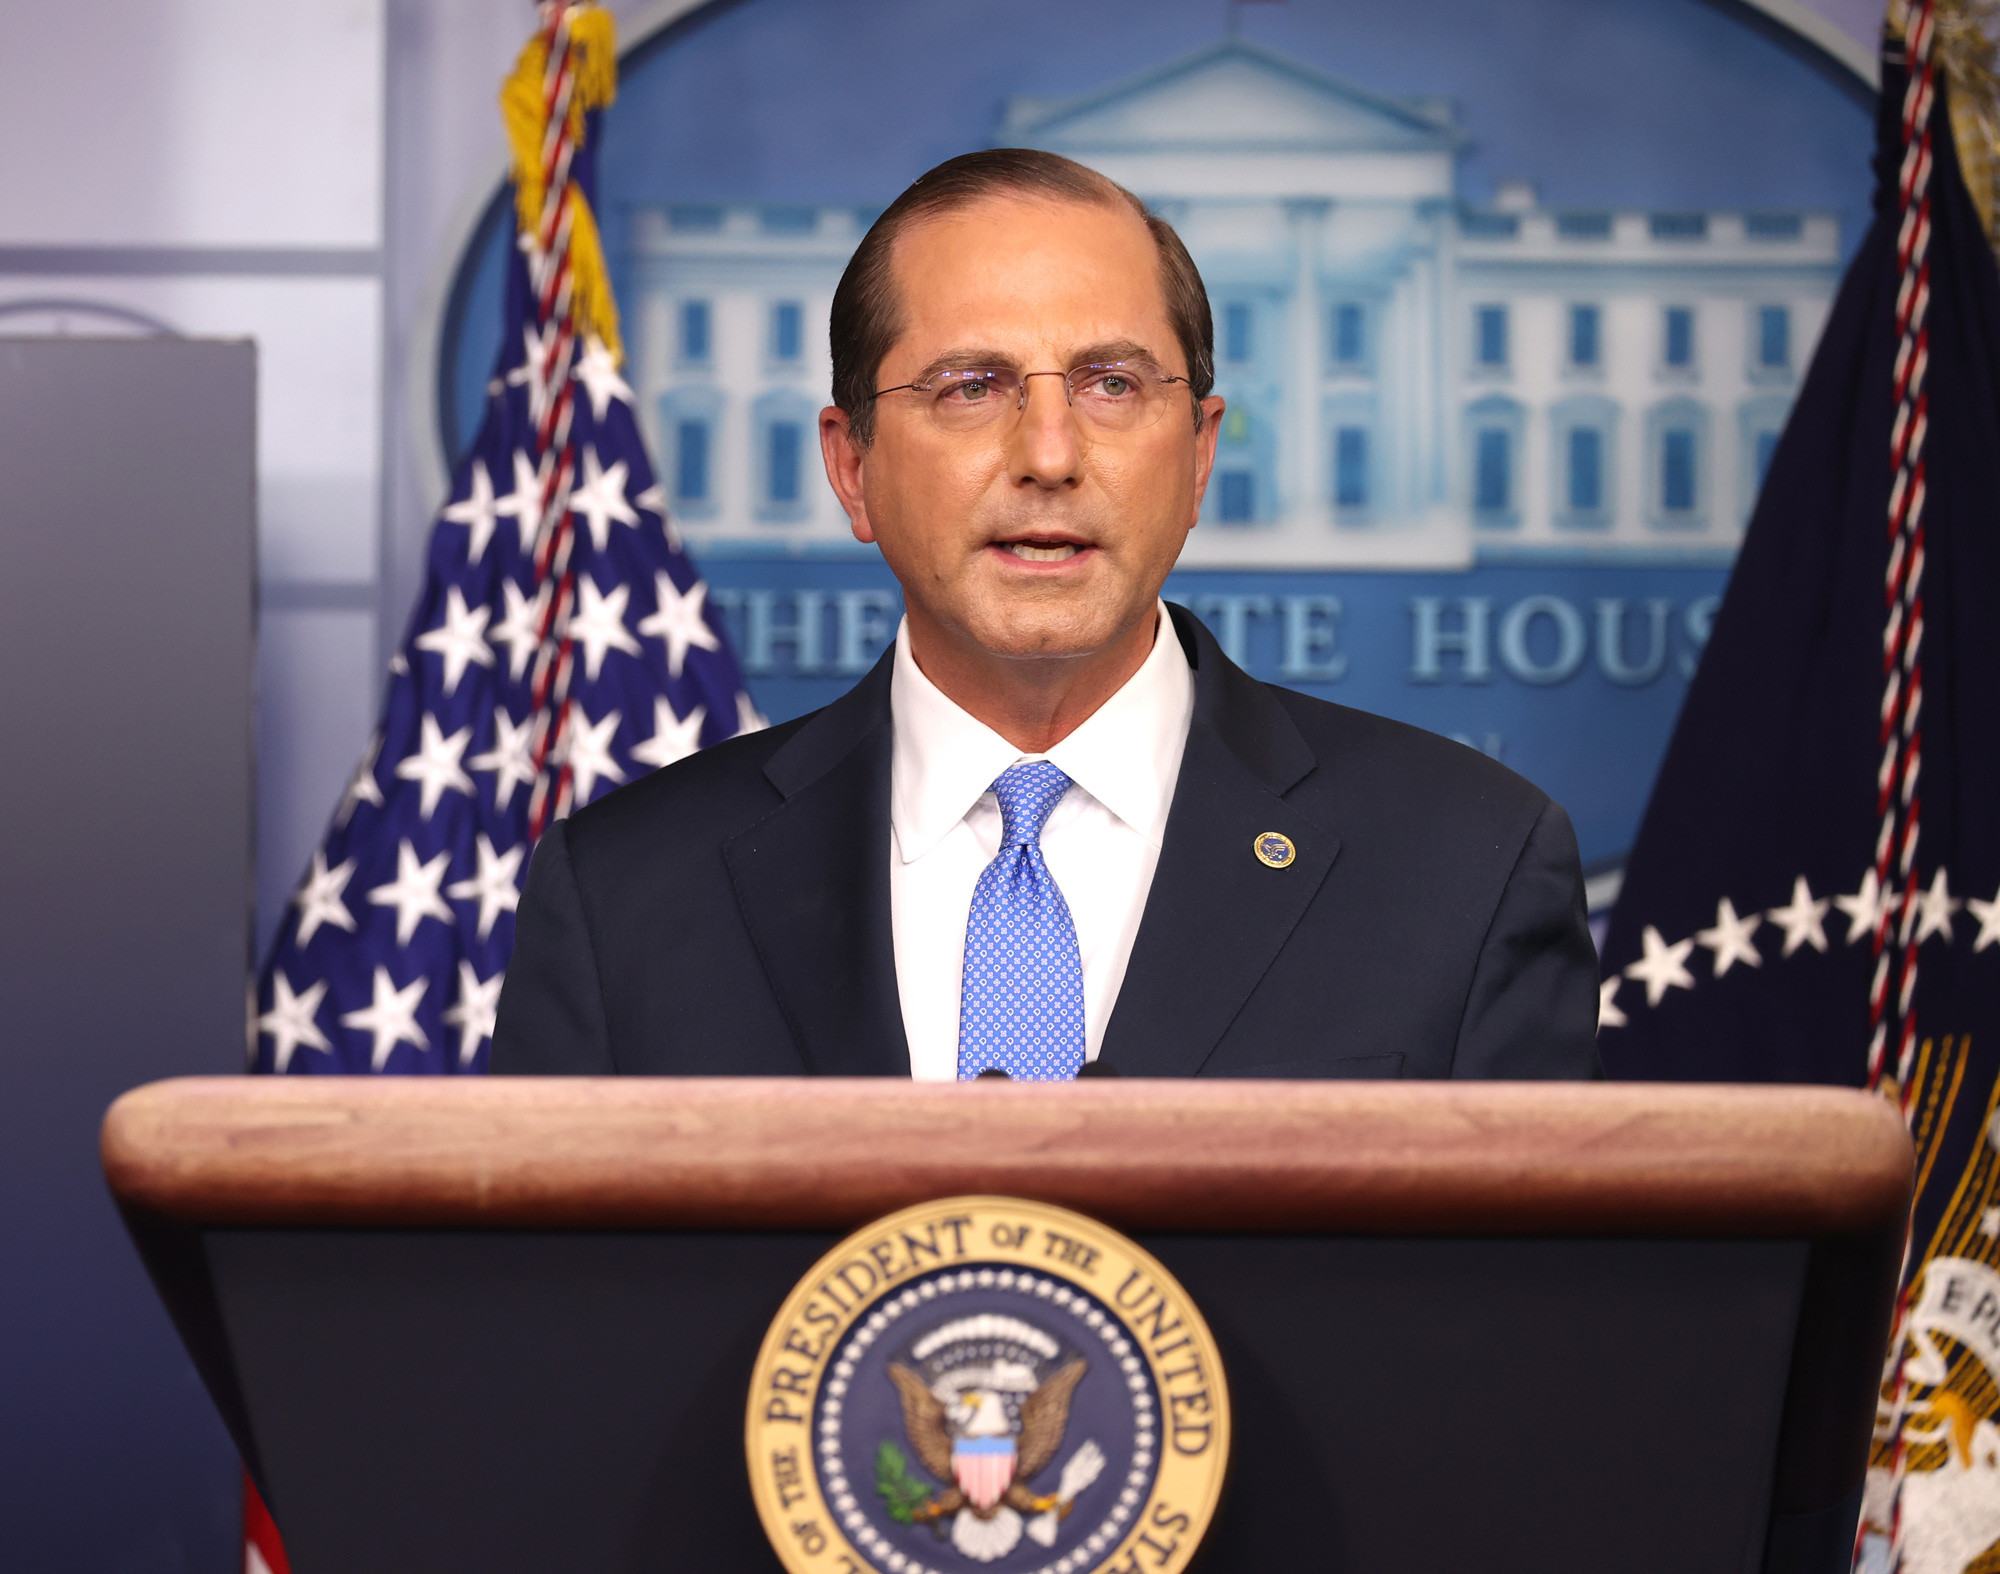 United States Secretary of Health and Human Services Alex Azar speaks to the press in the James Brady Press Briefing Room at the White House on November 20 in Washington, DC.